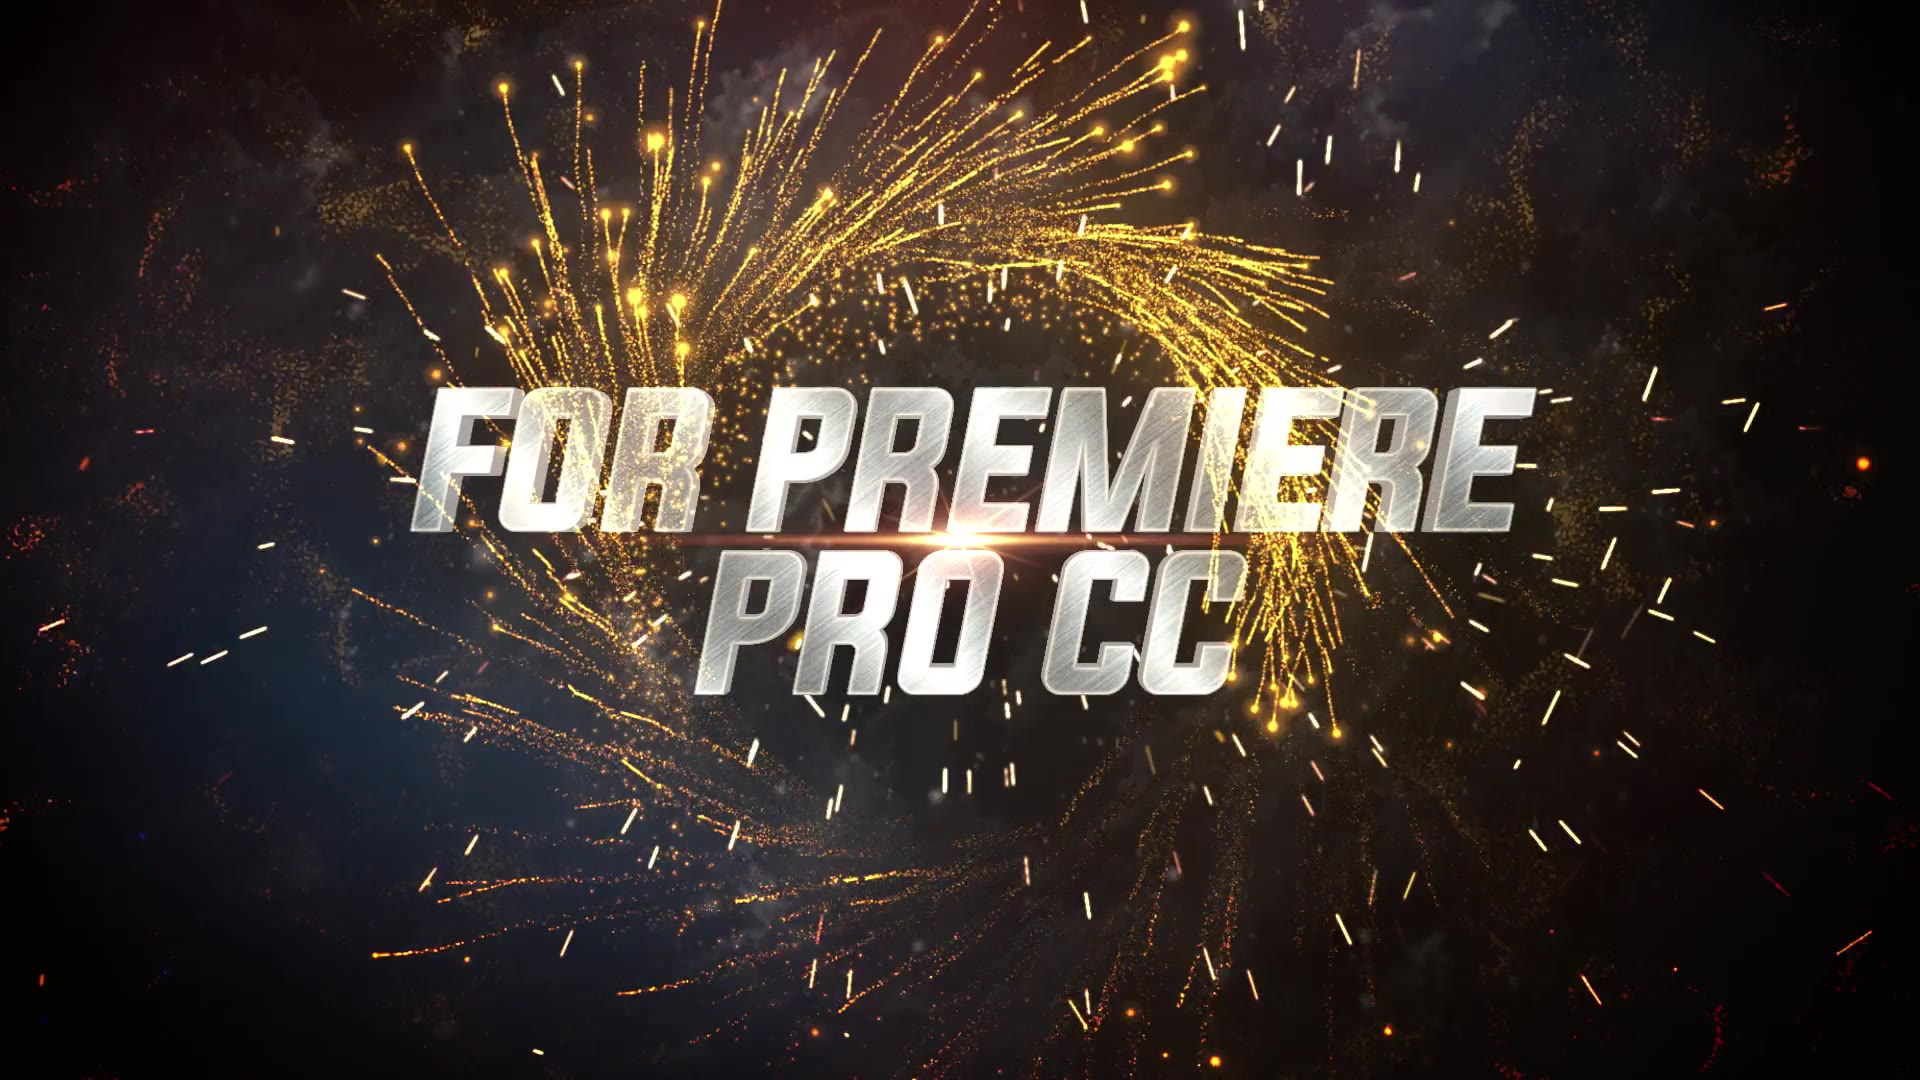 Cinematic Trailer Titles Premiere Pro Videohive 24601841 Premiere Pro Image 4